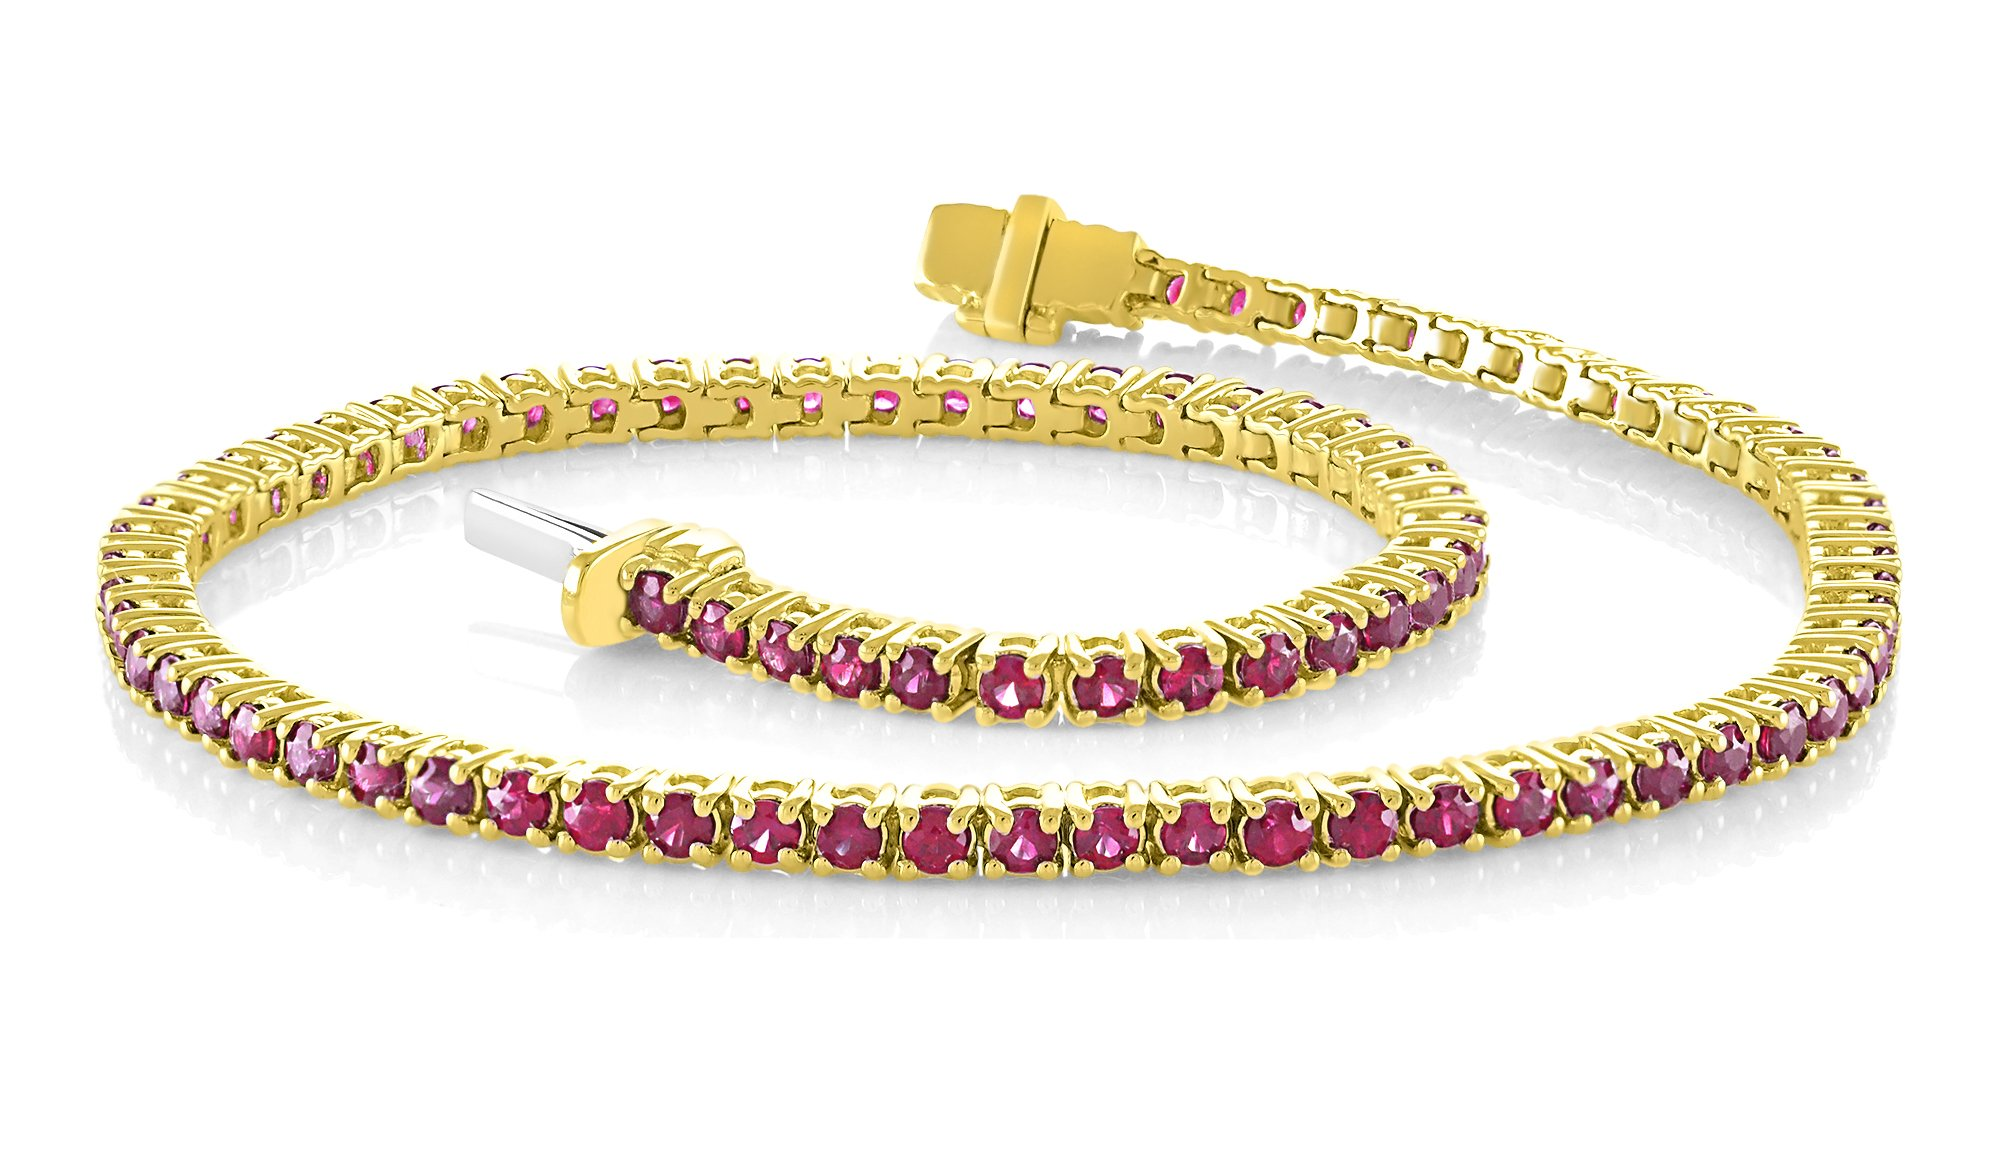 14K Yellow Gold 2.50 Carat (ctw) Natural Real Round Cut Red Ruby Tennis Bracelet For Women 7 Inches